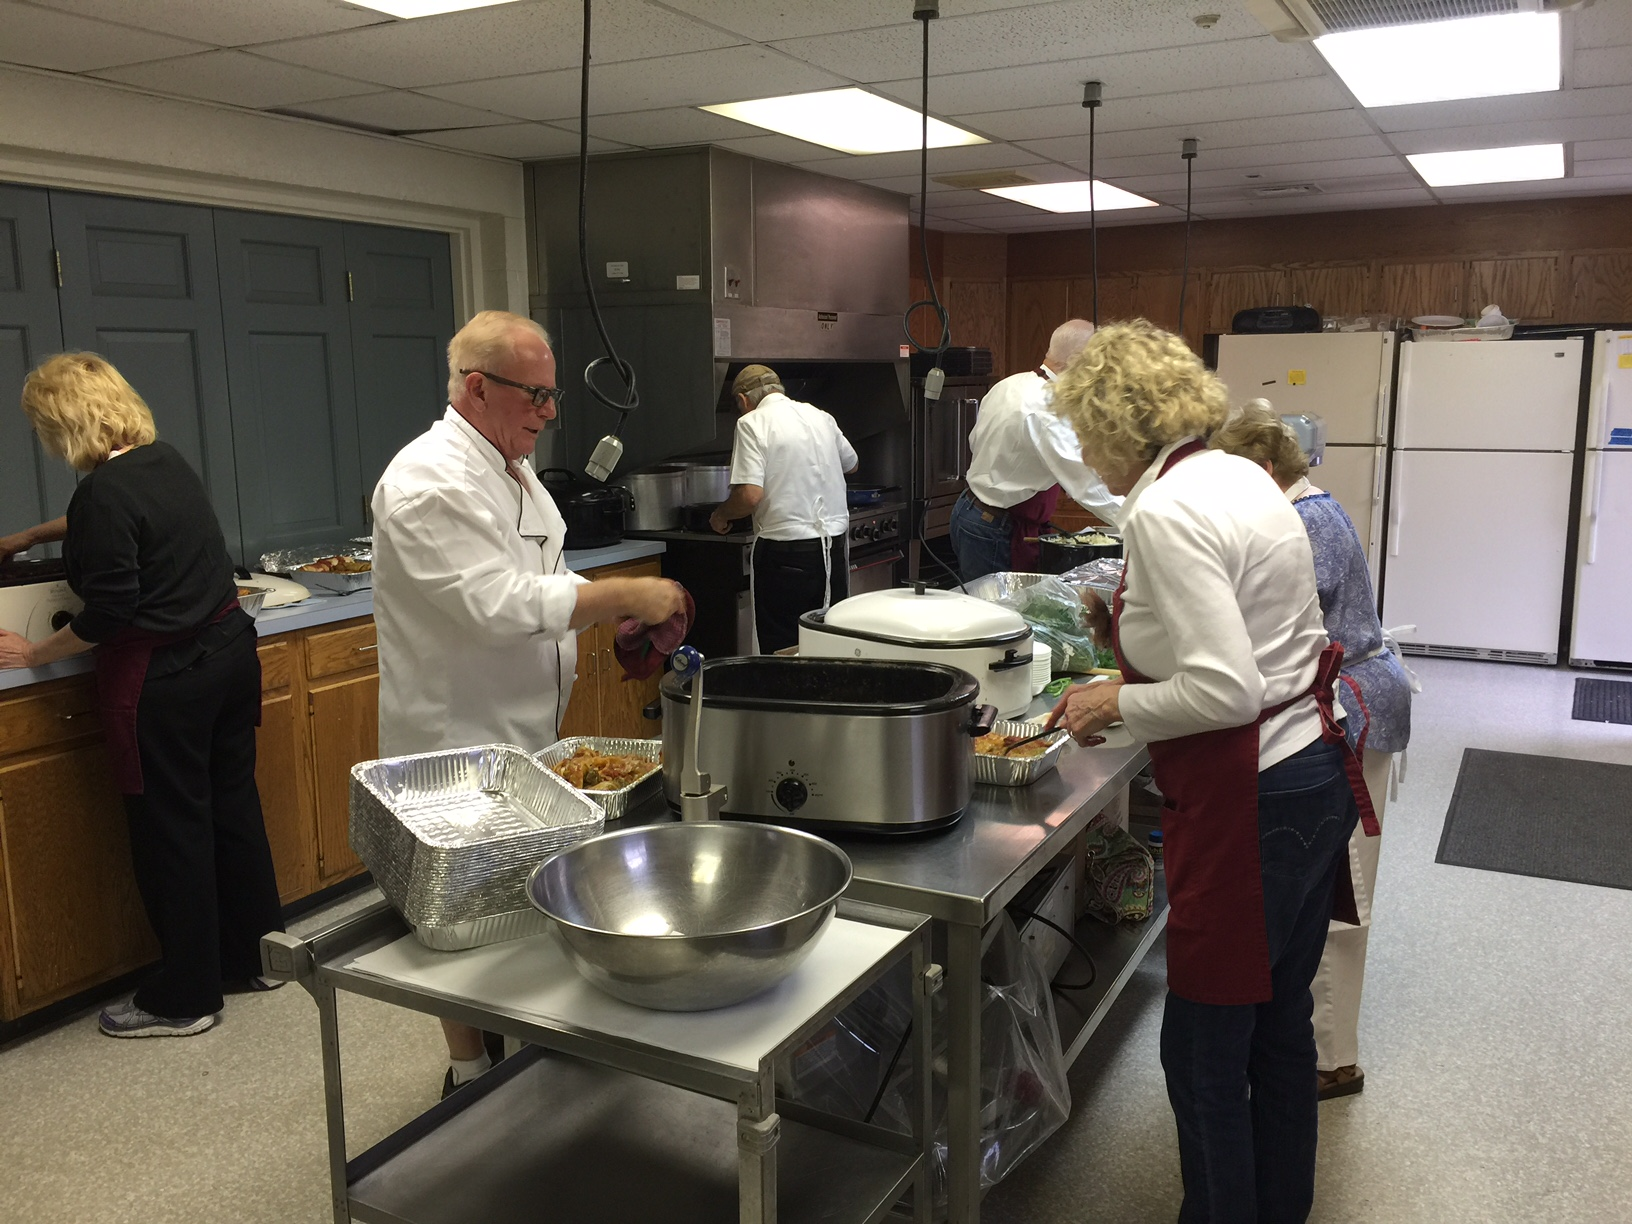 Chef Steve Bandura and his crew of volunteers  preparing food for the LCI Family Banquet fundraiser.